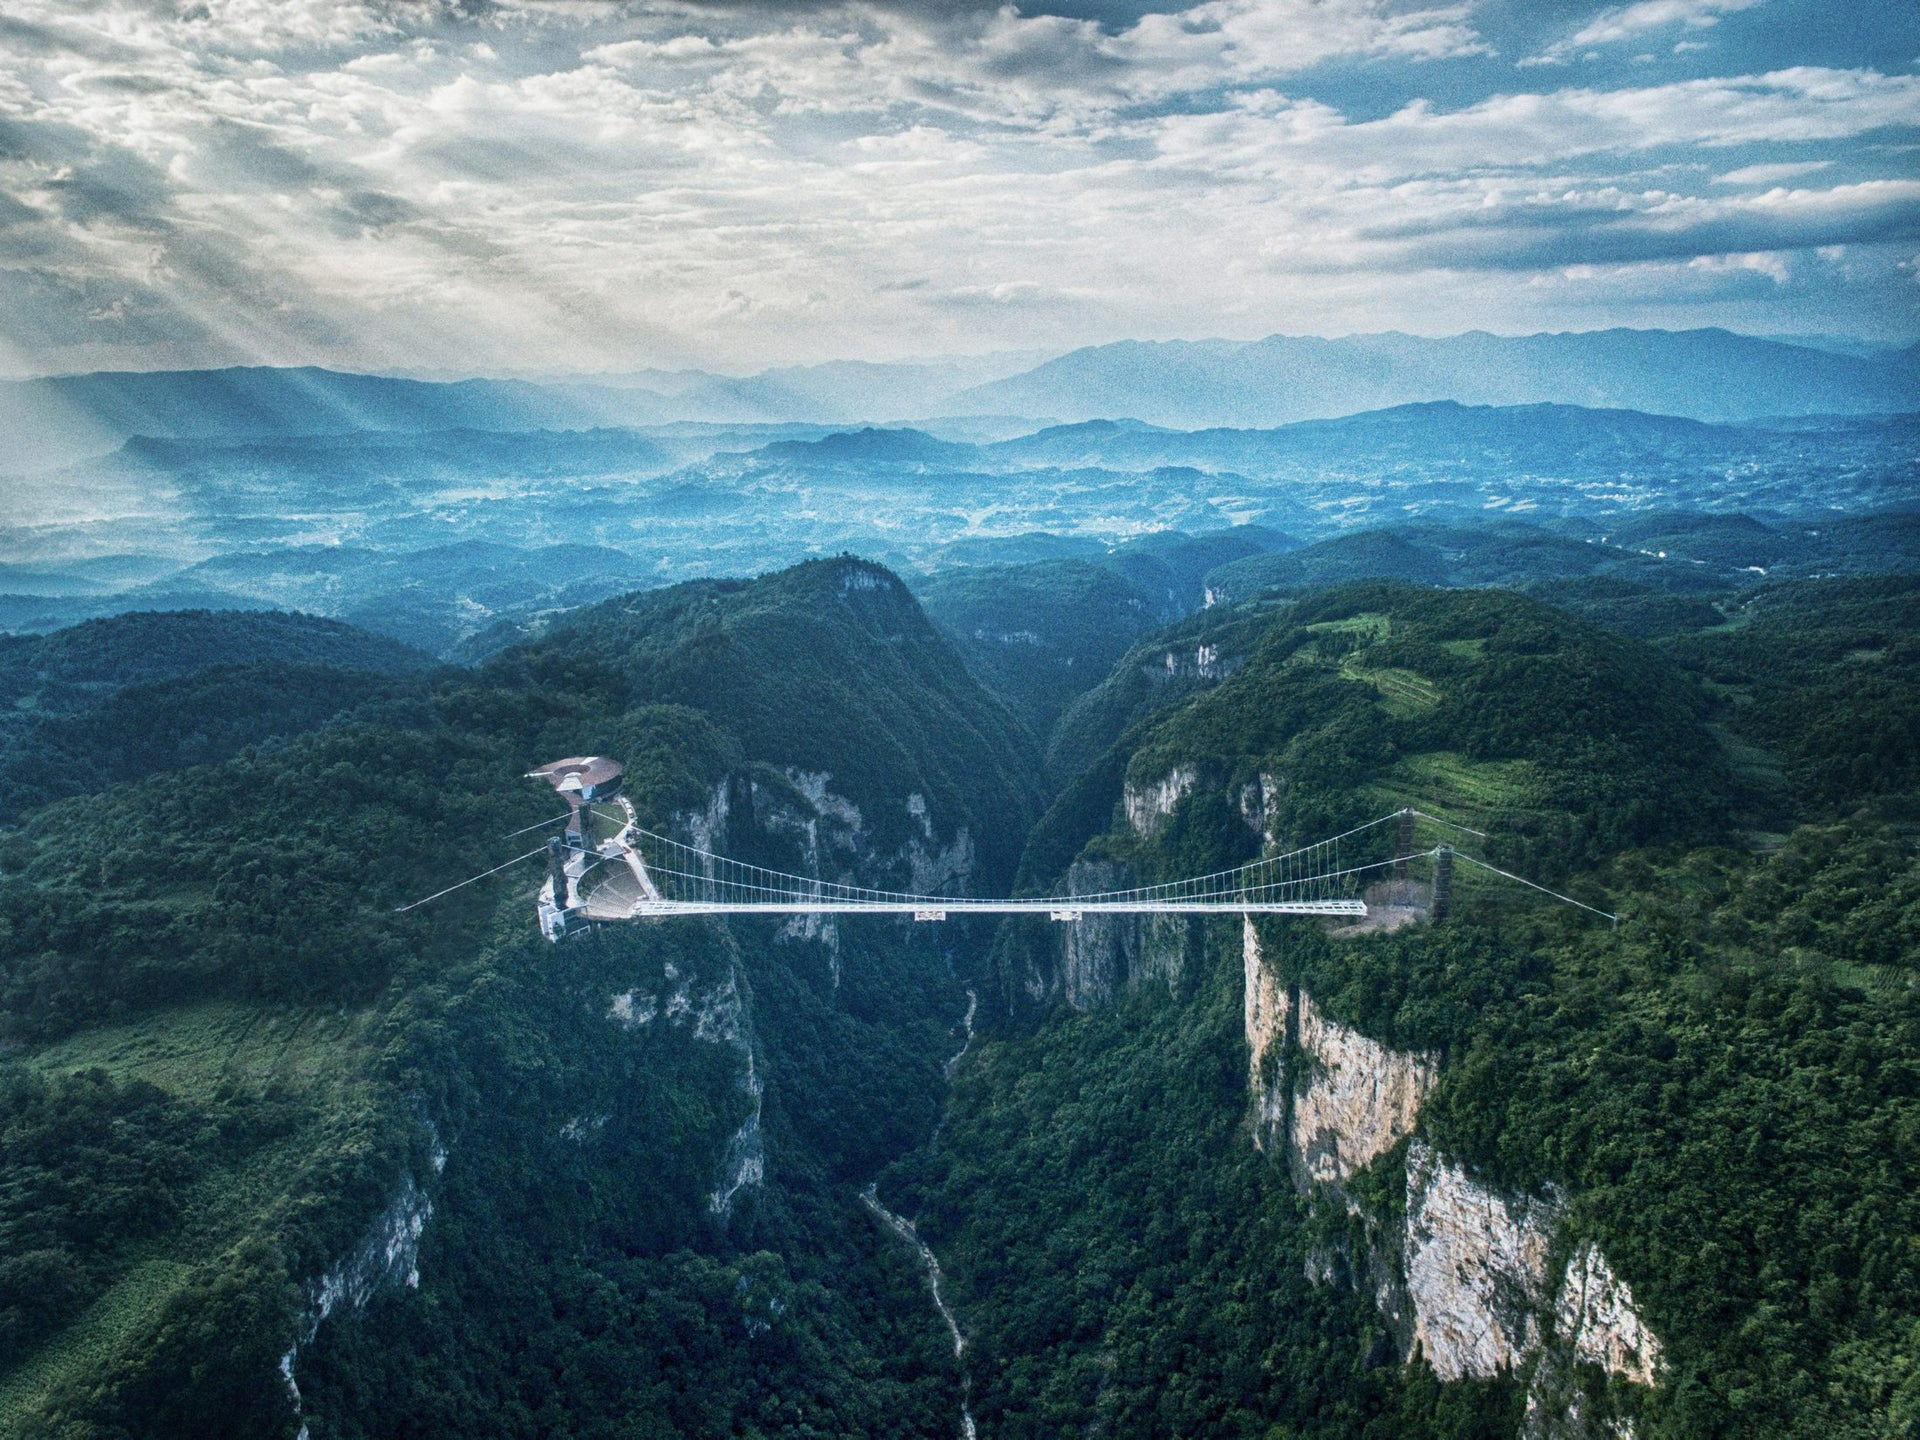 An Aerial view of Haim Dotan's glass-bottomed bridge in China.